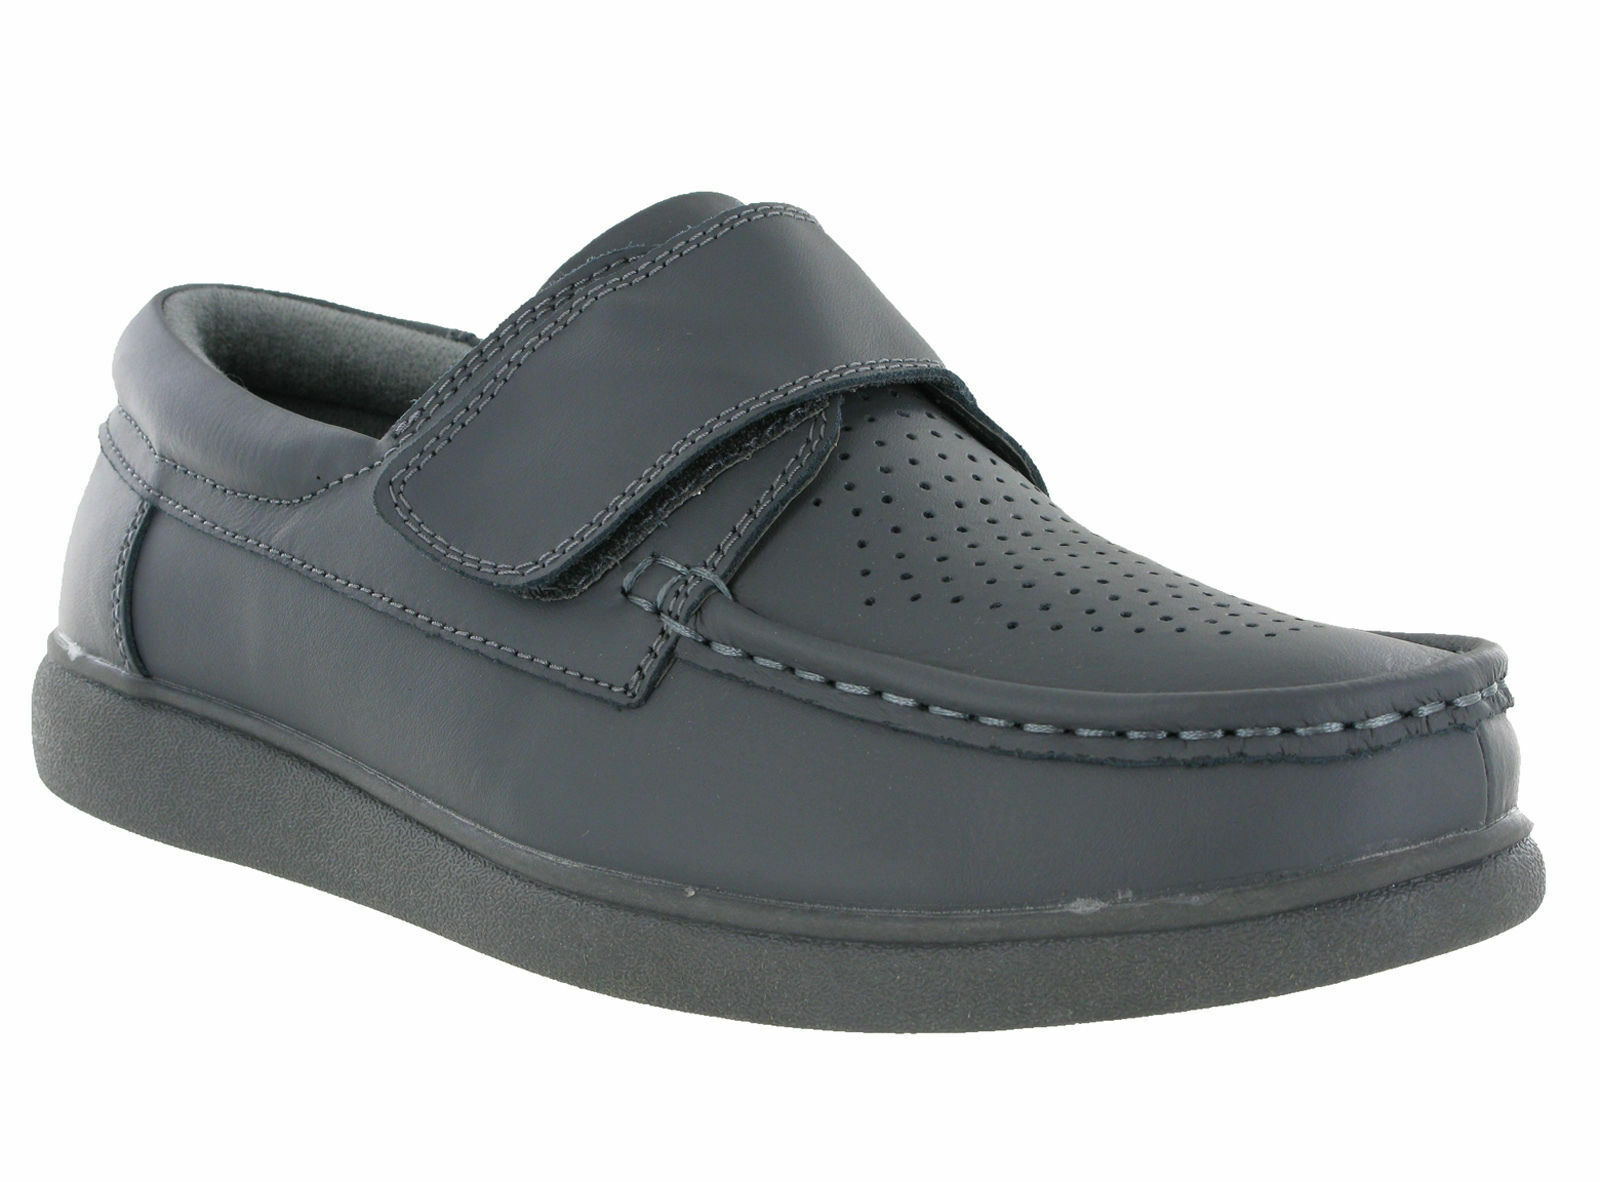 Unisex DEK Touch Fasten Leather Bowling Shoes Grey Leather